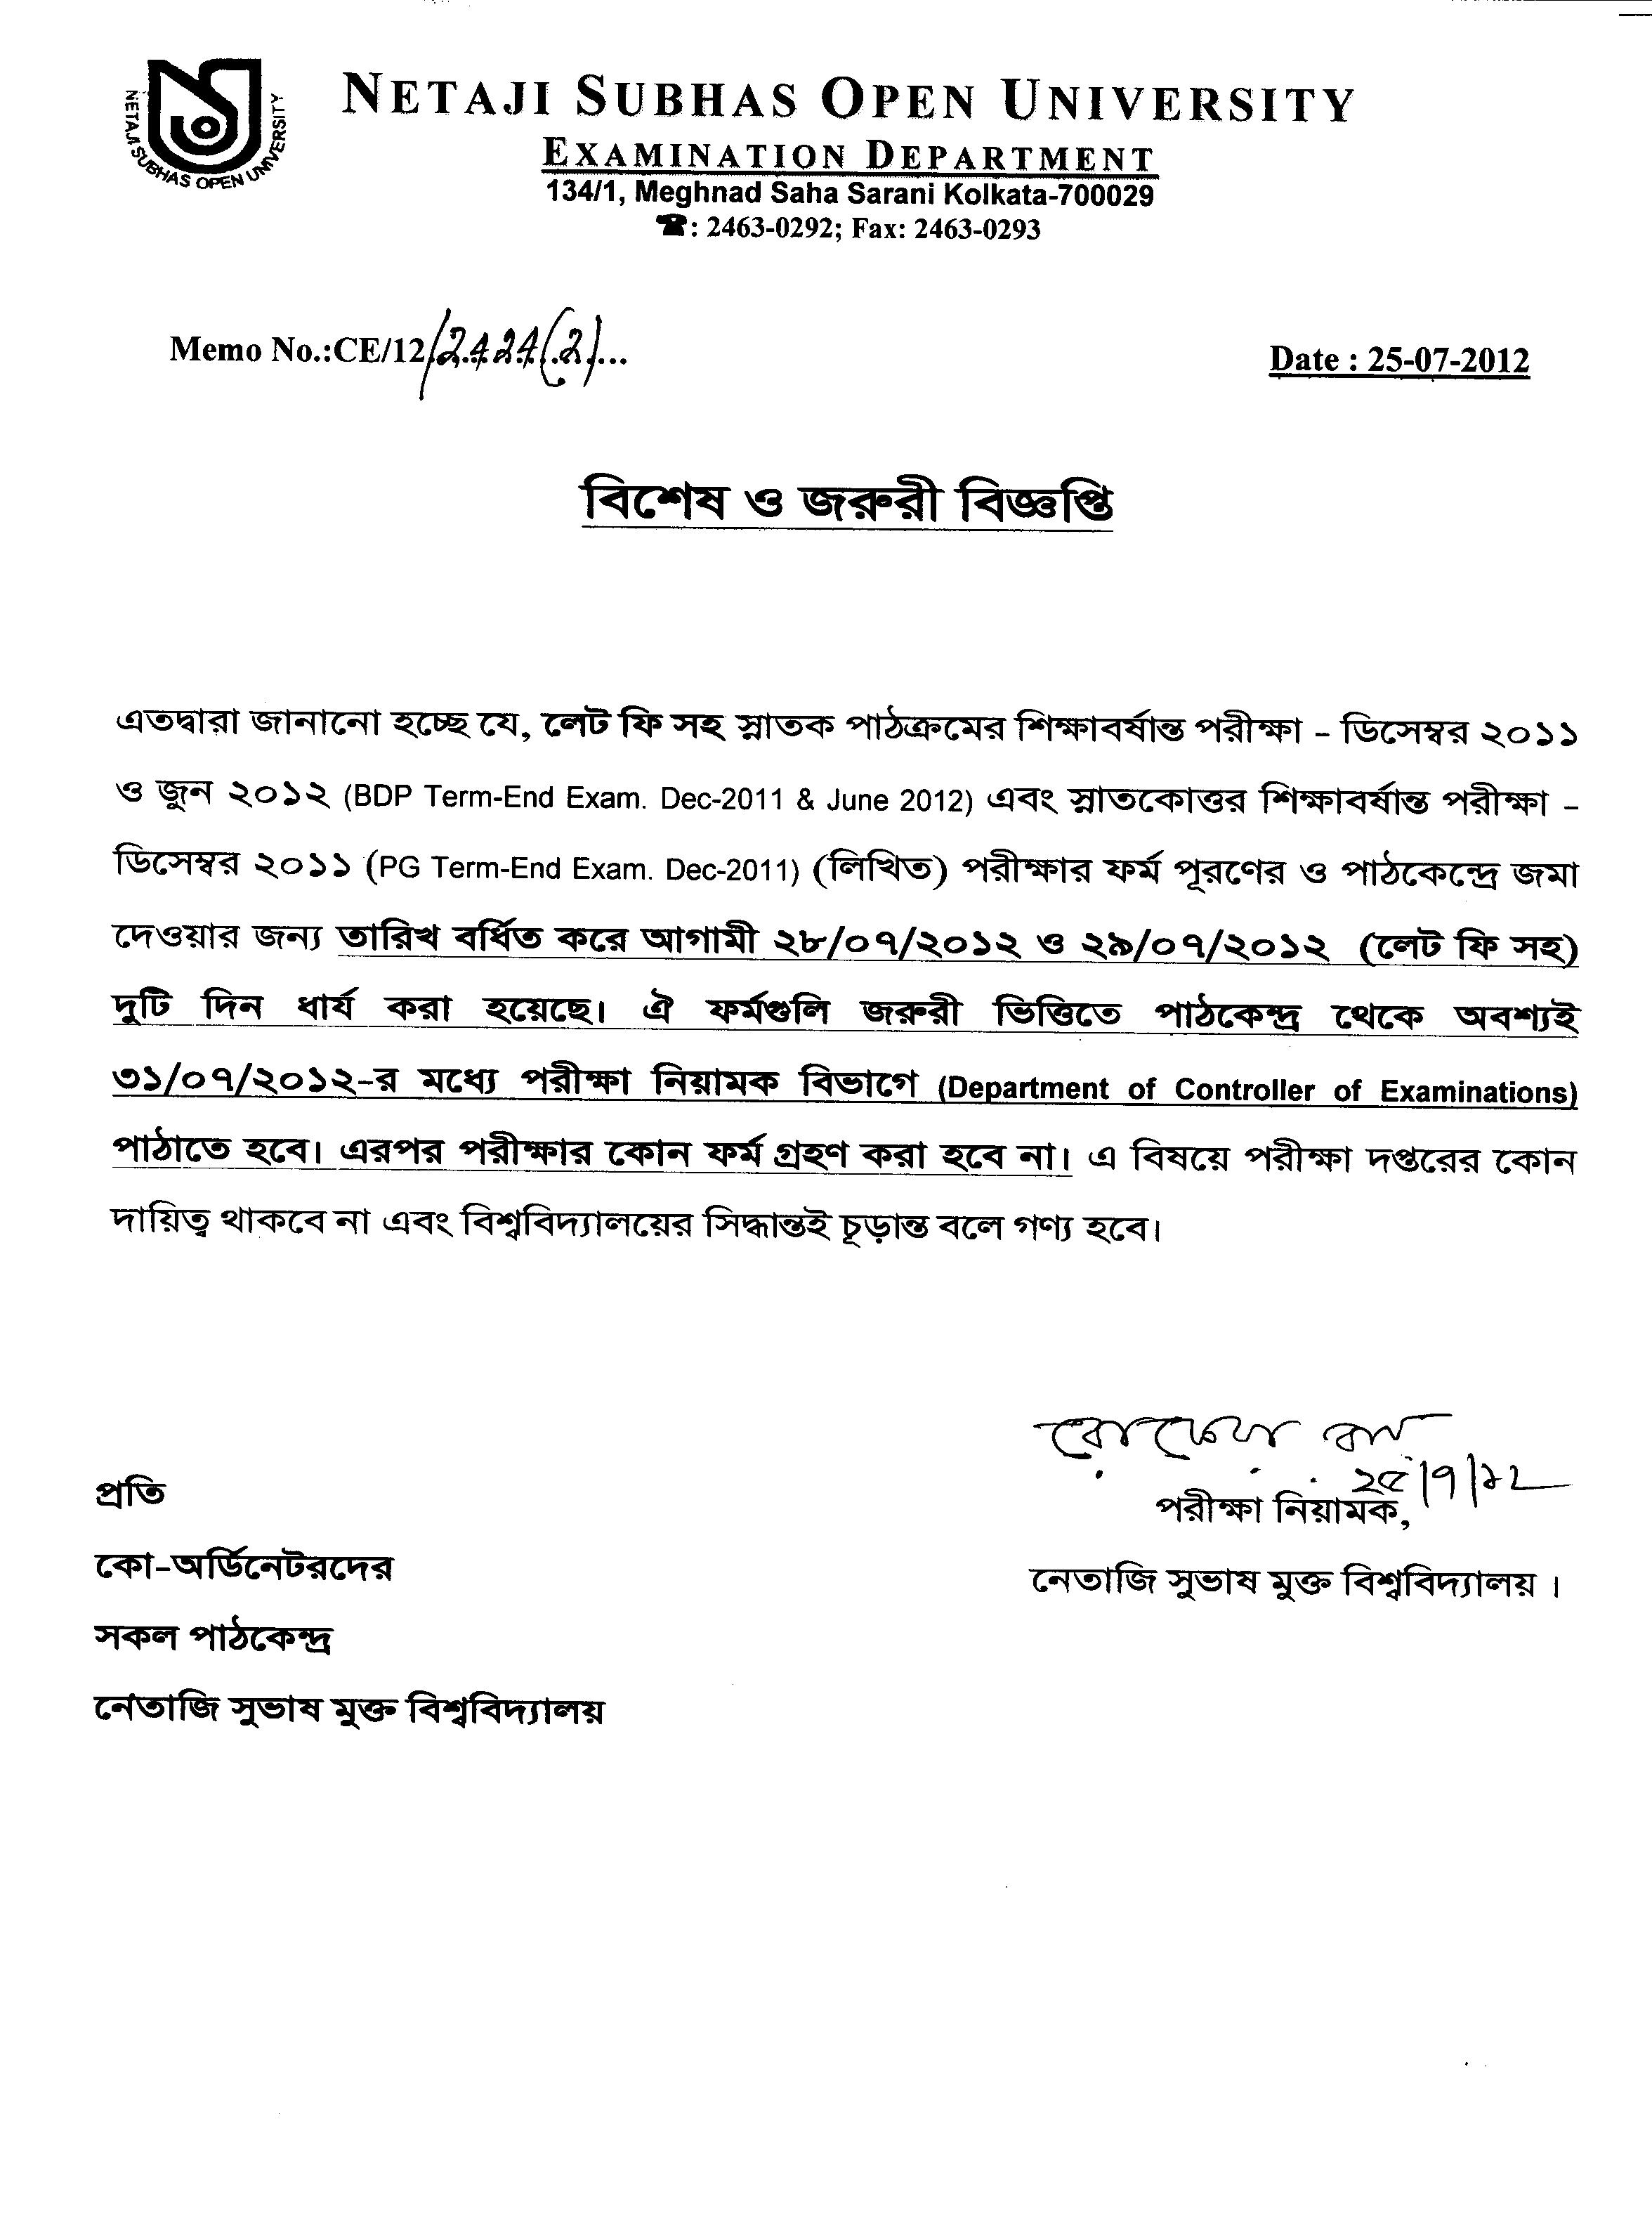 netaji subhas open university mlis dissertation